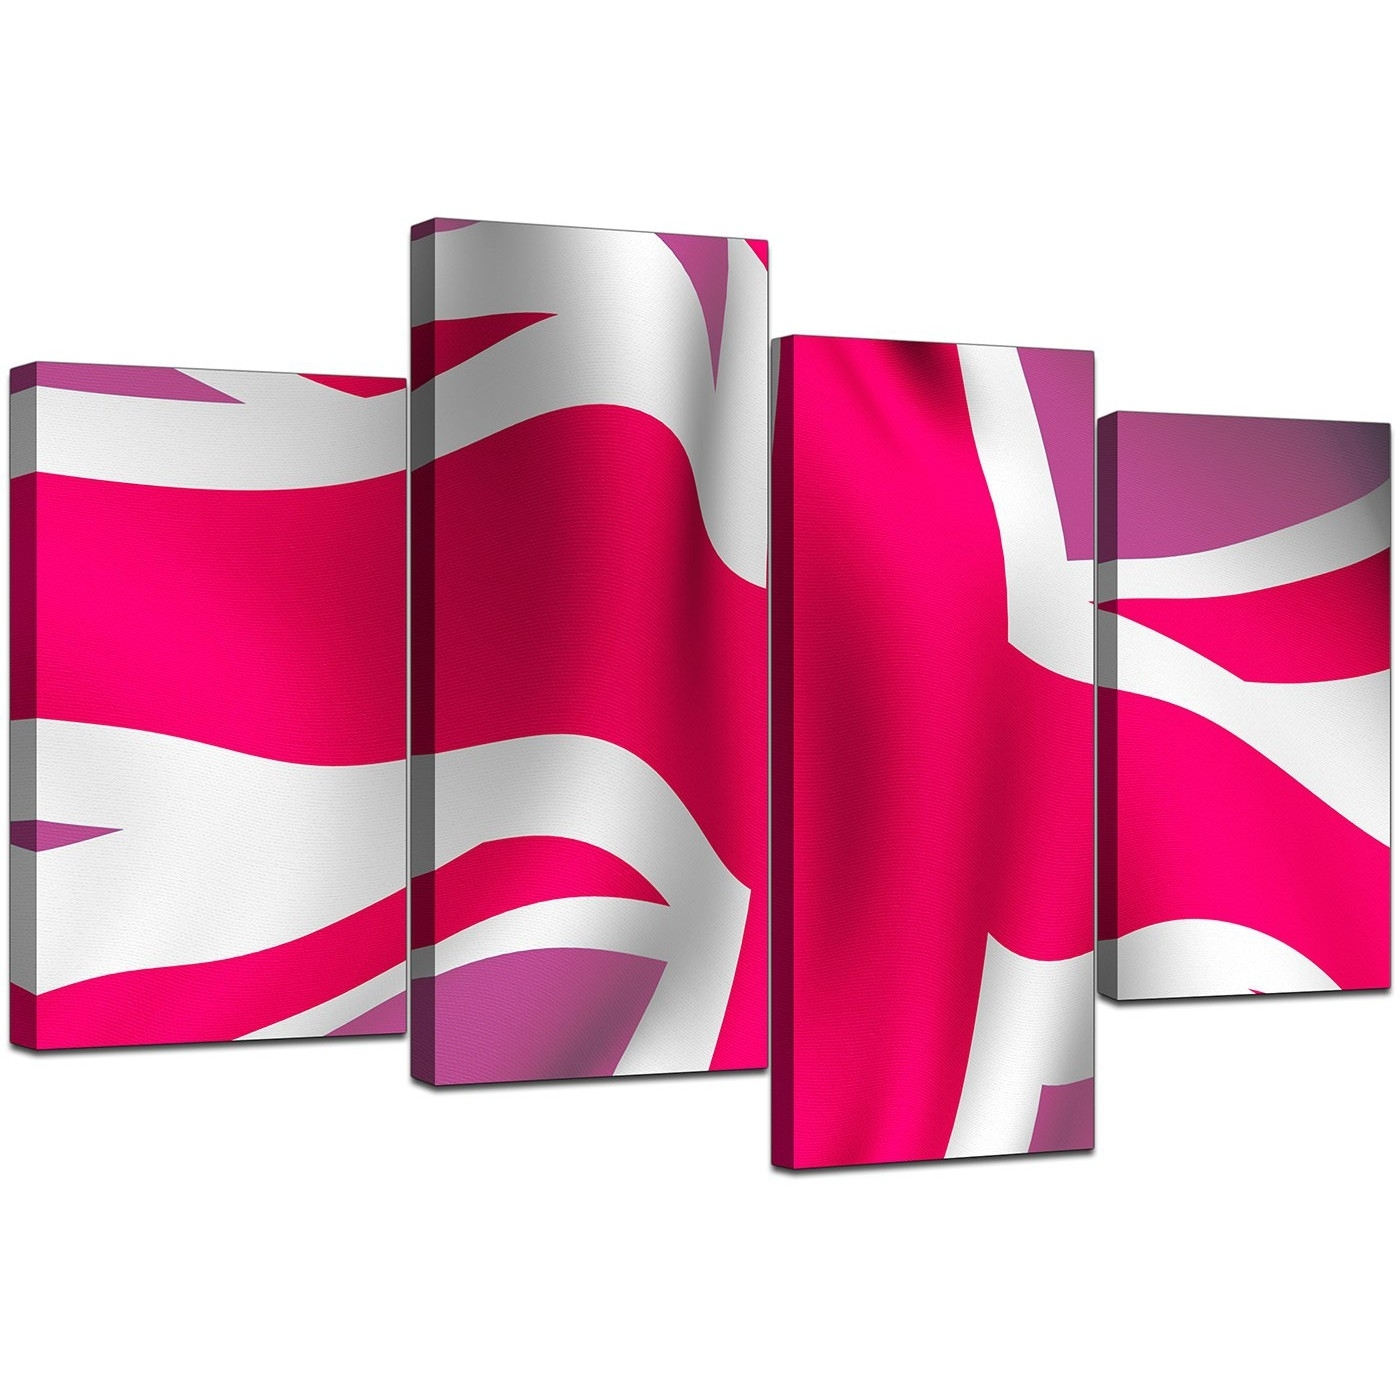 Modern Union Jack Canvas Prints In Pink – For Bedroom In Most Recently Released Union Jack Canvas Wall Art (View 6 of 15)